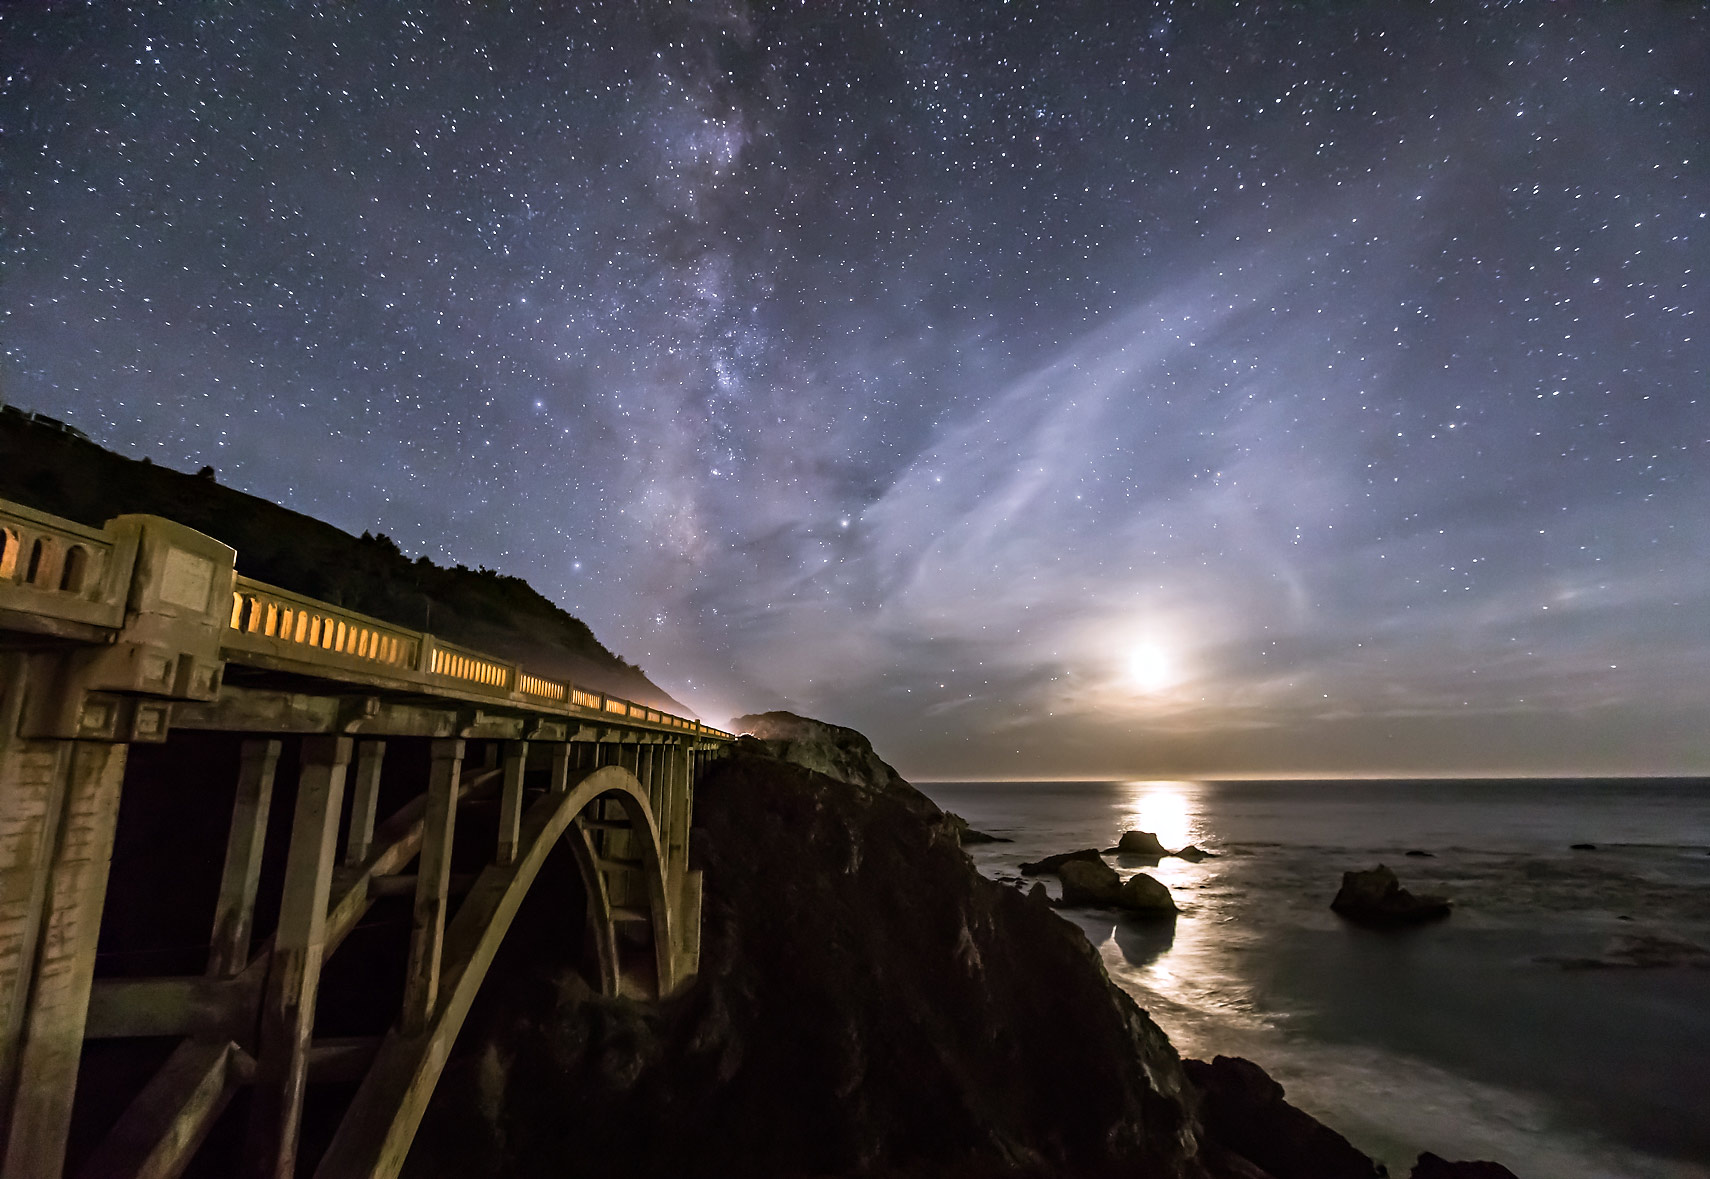 Big_Sur_Milky_Way_Moon_Bridge